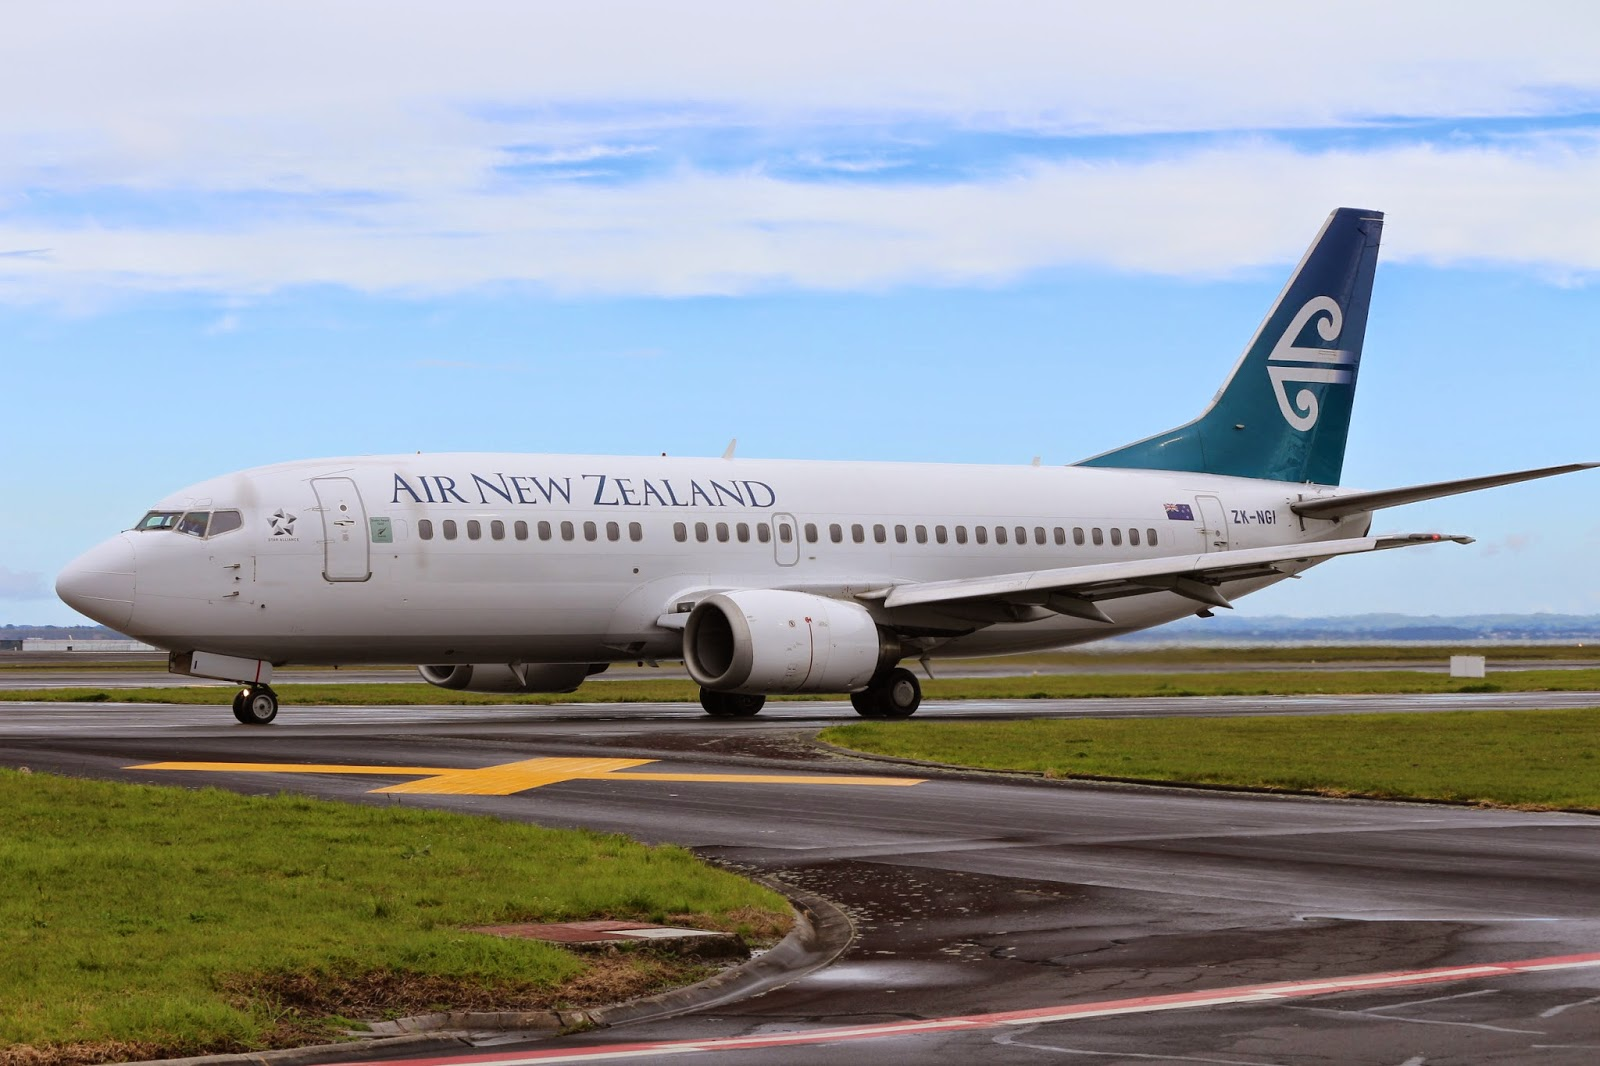 air new zealand - photo #23